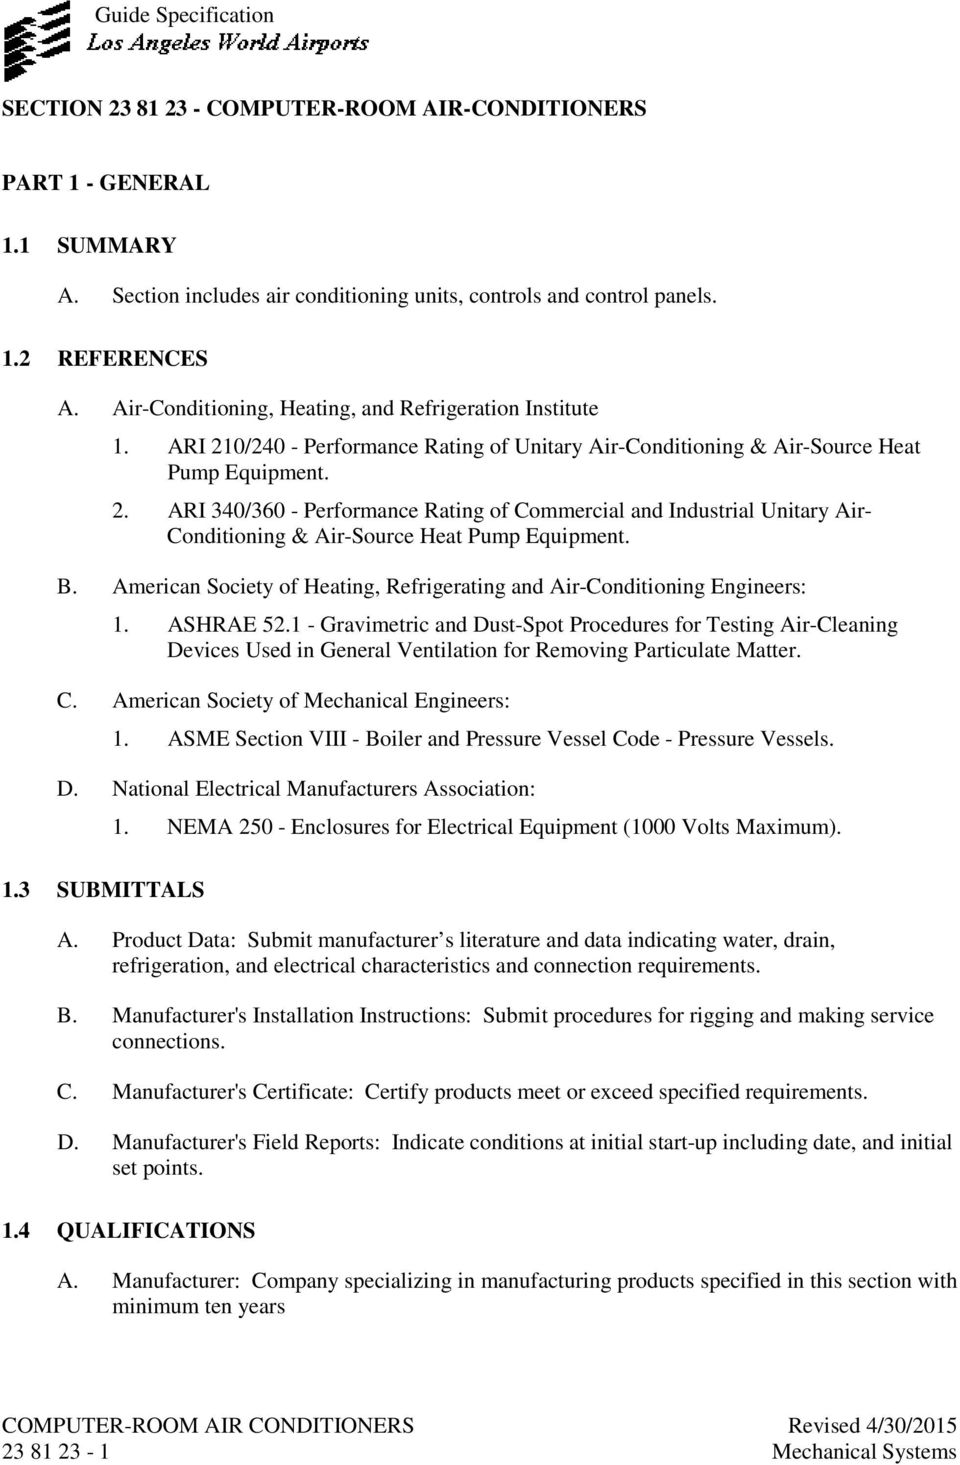 B. American Society of Heating, Refrigerating and Air-Conditioning Engineers: 1. ASHRAE 52.